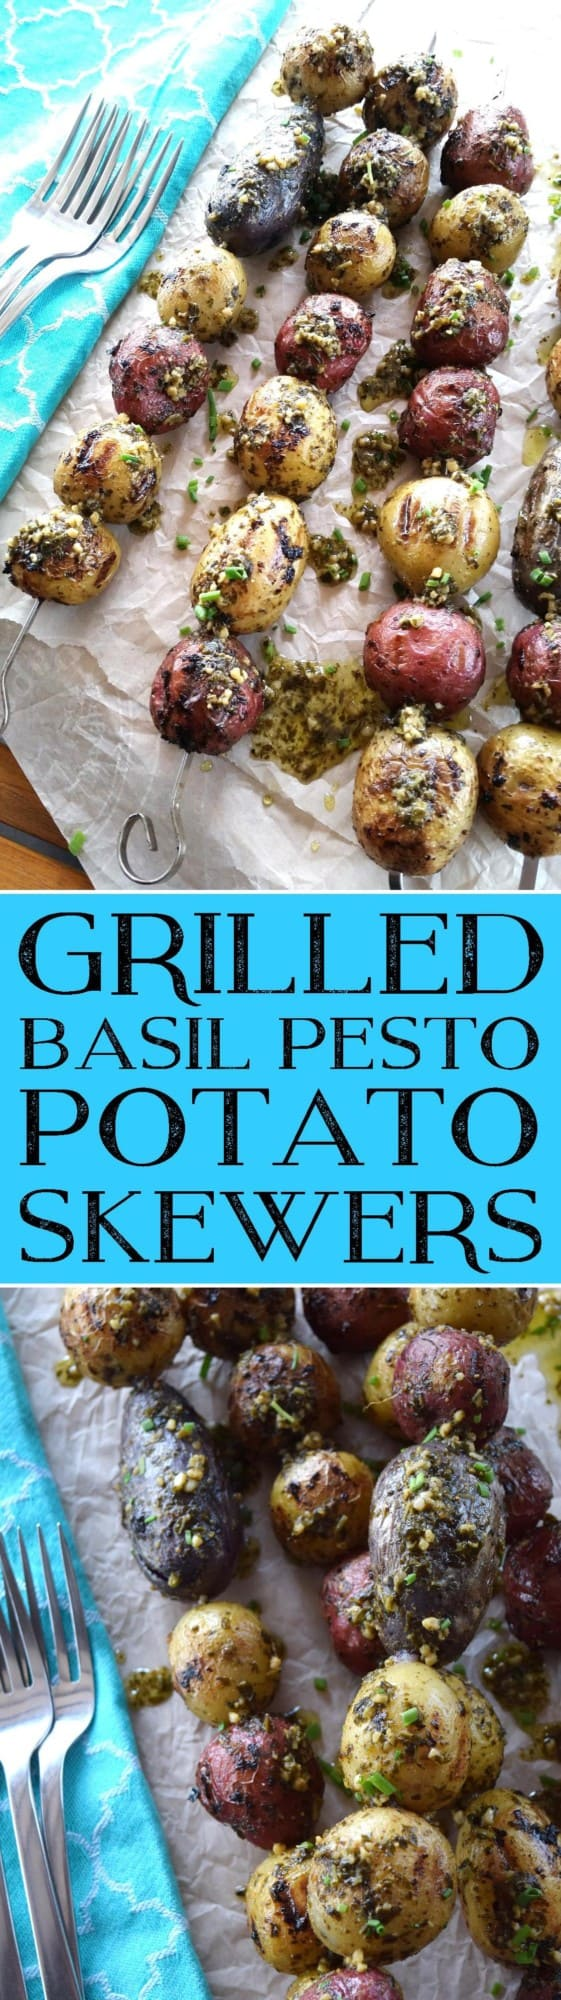 Grilled Basil Pesto Potato Skewers